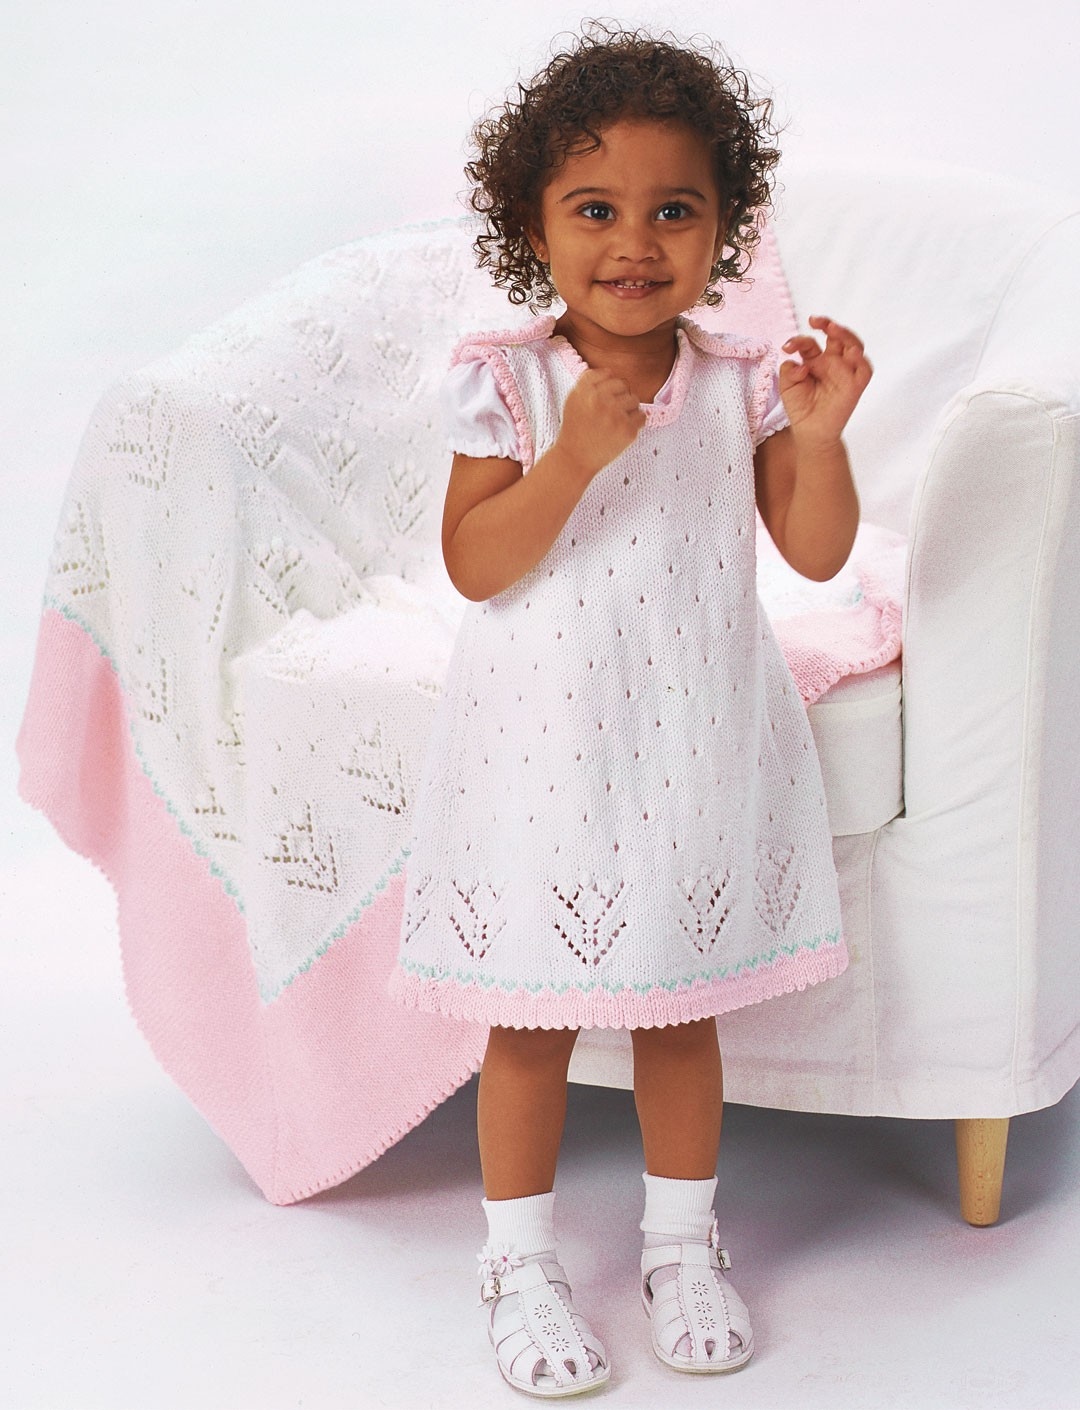 Patons Knitting Patterns For Babies Free : Patons Tulip Lace Dress with Blanket (Pattern) Yarnspirations